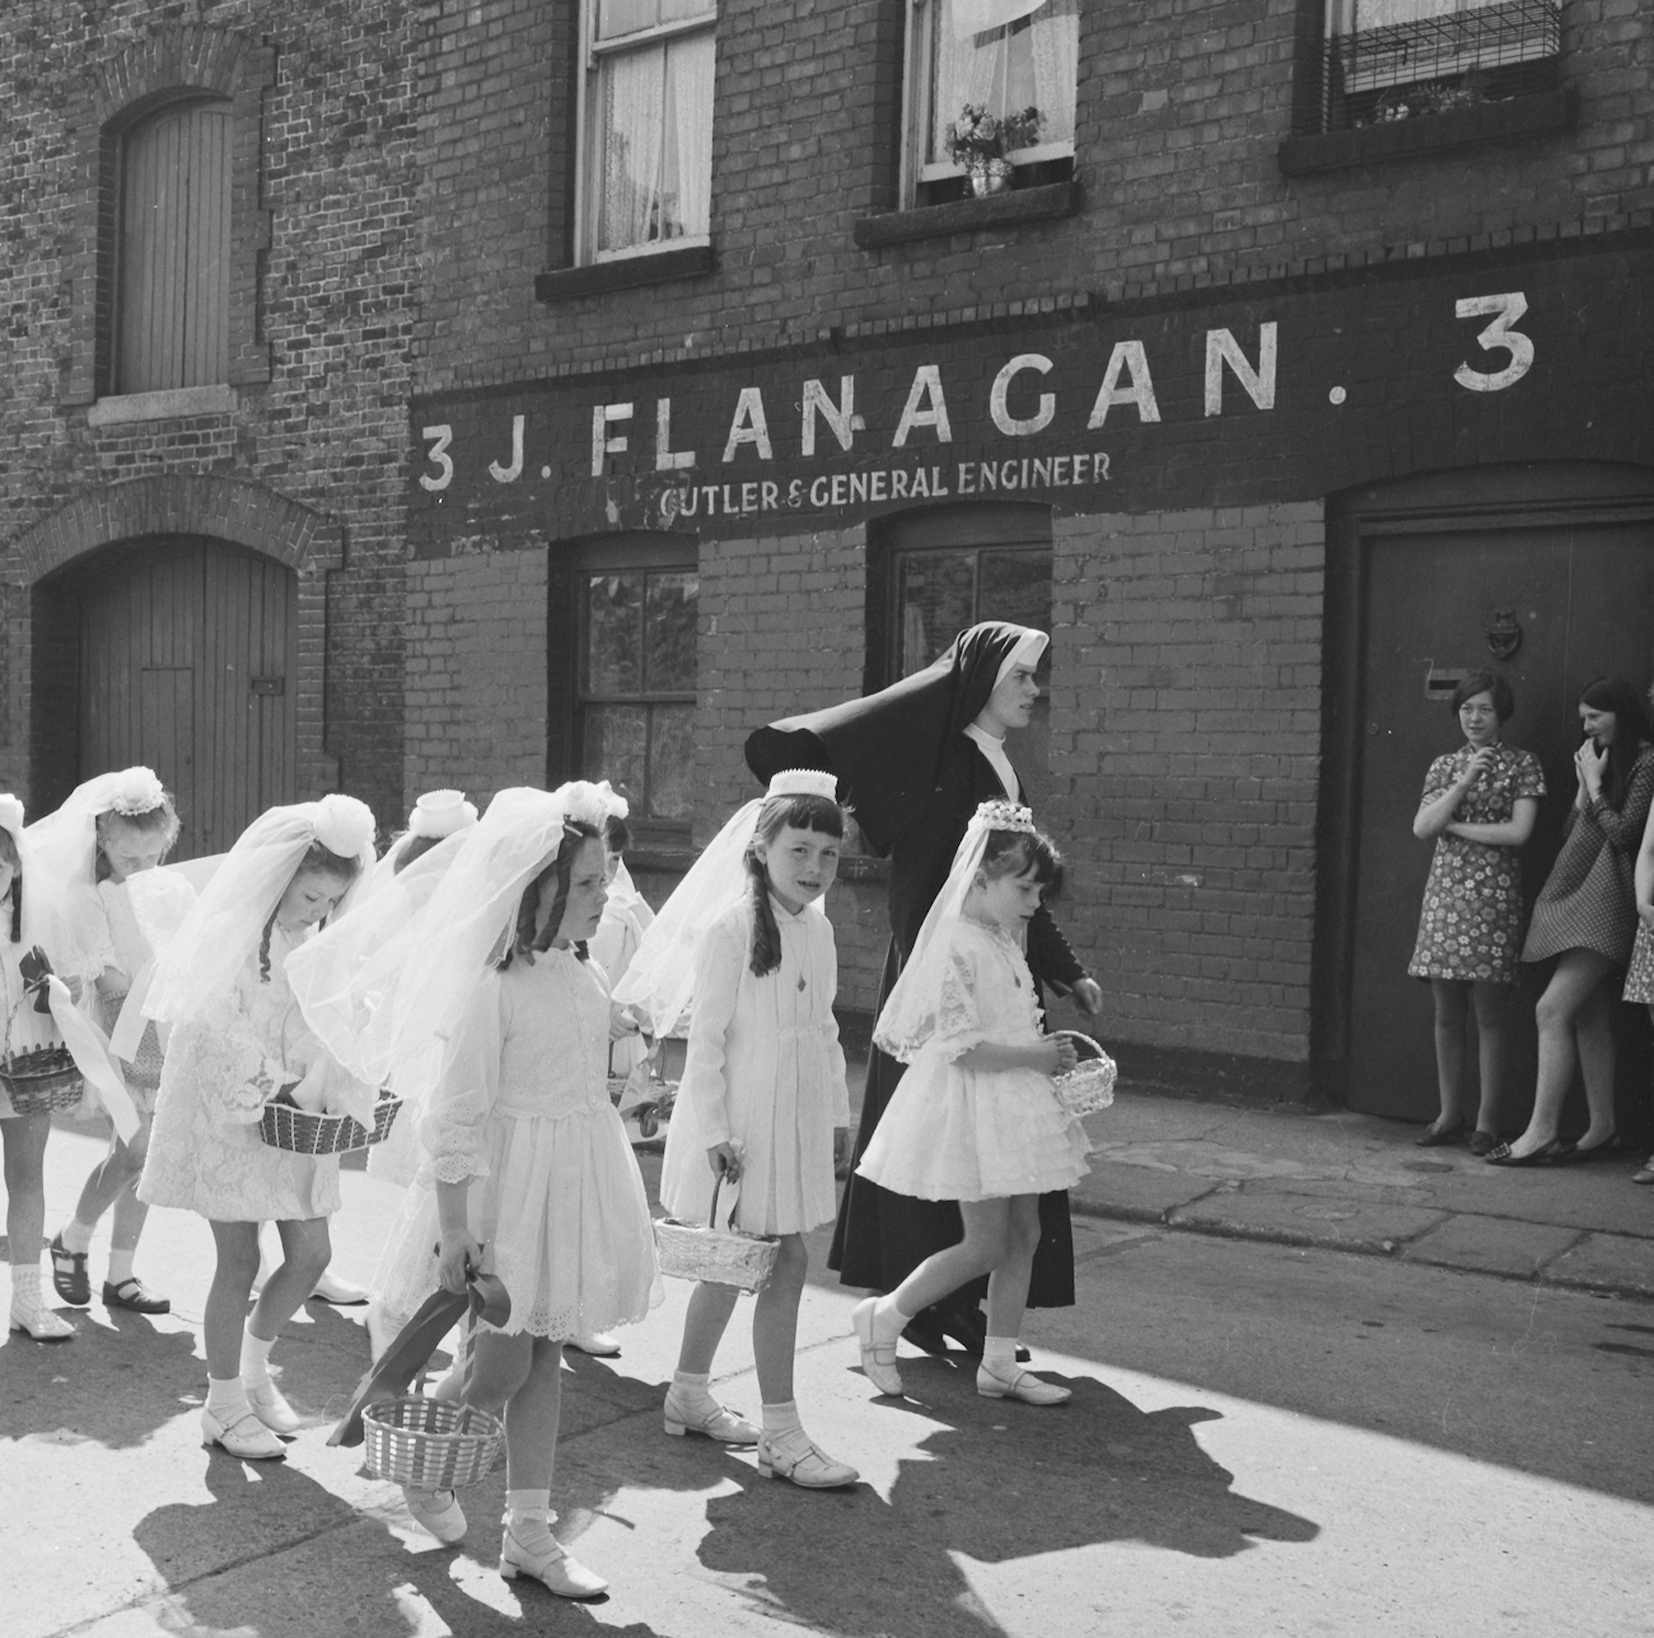 "Ireland 1960s, A young nun walking Holy Communion girls past no. 3, Halston Street, Dublin on the feast of Corpus Christi. Interesting juxtaposition with the older mini-skirted local girls. The baskets were usually filled with flower petals for the girls to scatter along the way... Thanks to Phyllis Stice over on our Facebook for allowing us to get to the exact date of 5 June 1969, from the unsatisfactory ""sometime in 1969""! Photographer: Elinor Wiltshire Date: 5 June 1969"